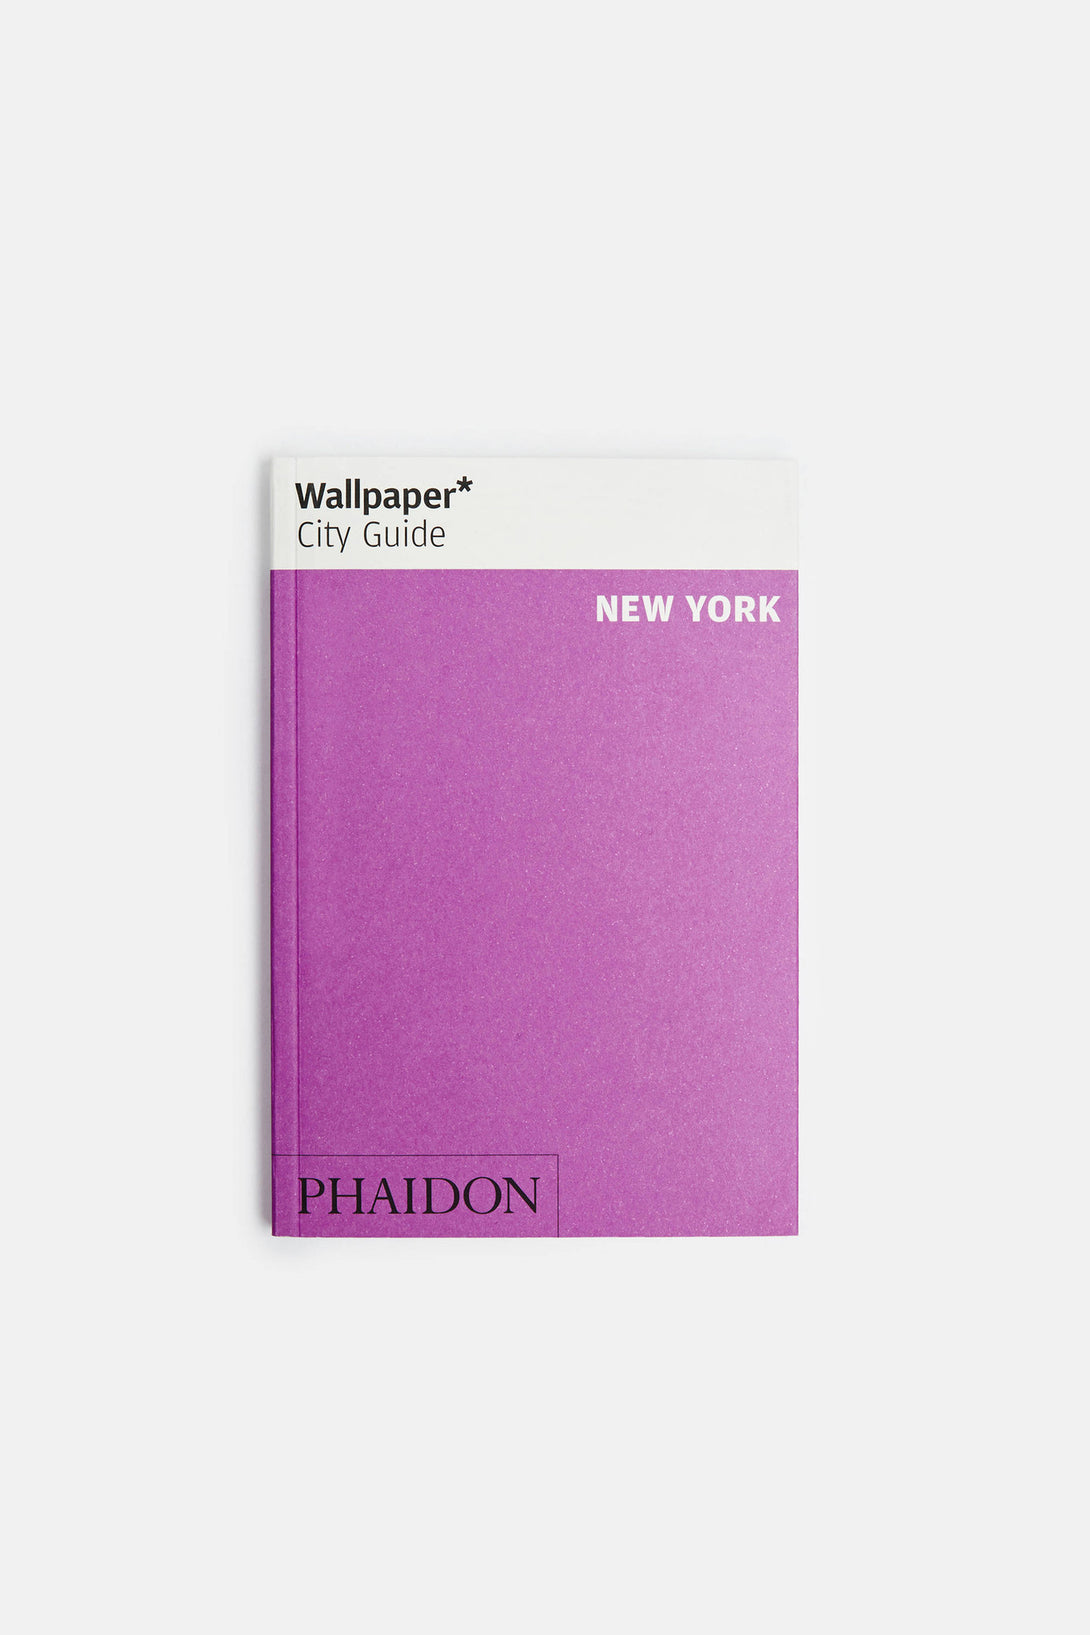 Wallpaper* City Guide New York